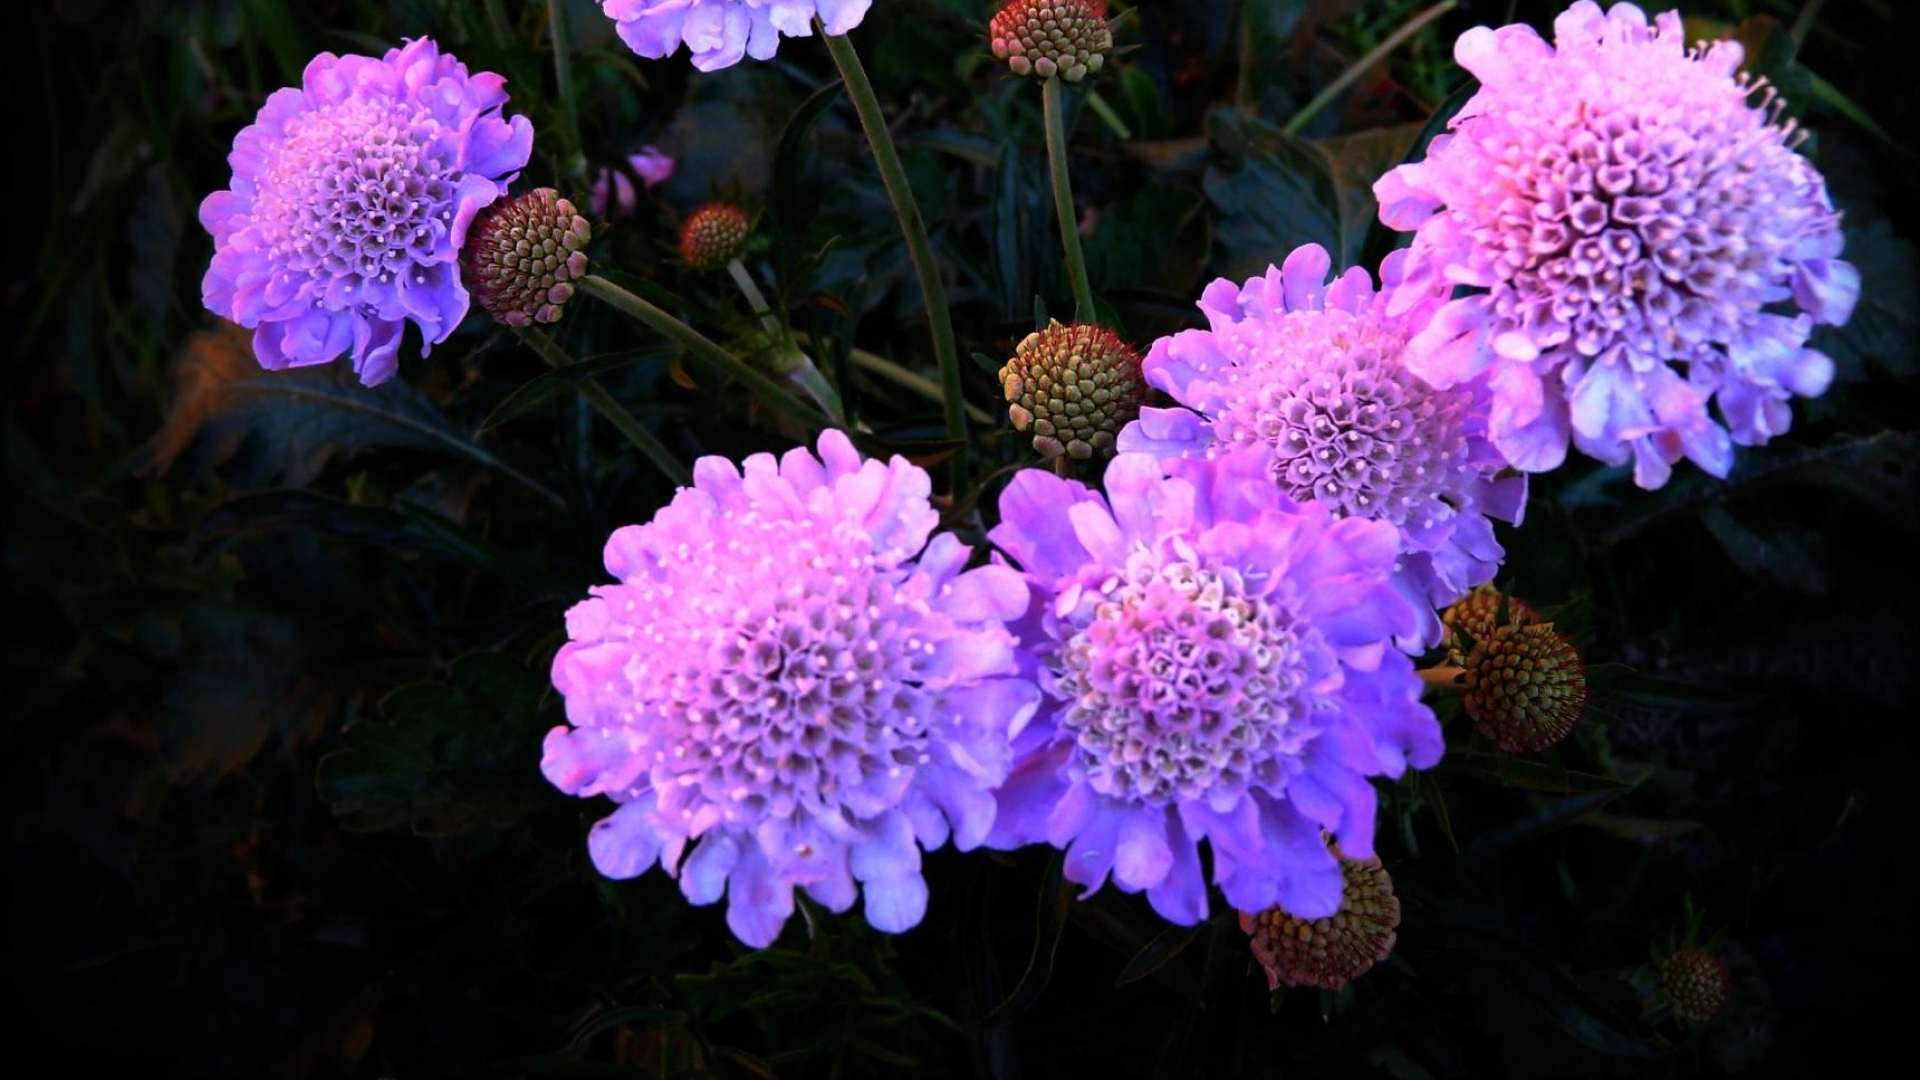 Fantastic Wallpaper Night Flower - flowers_purple_night_flowerbed_44436_1920x1080  Trends-758847.jpg